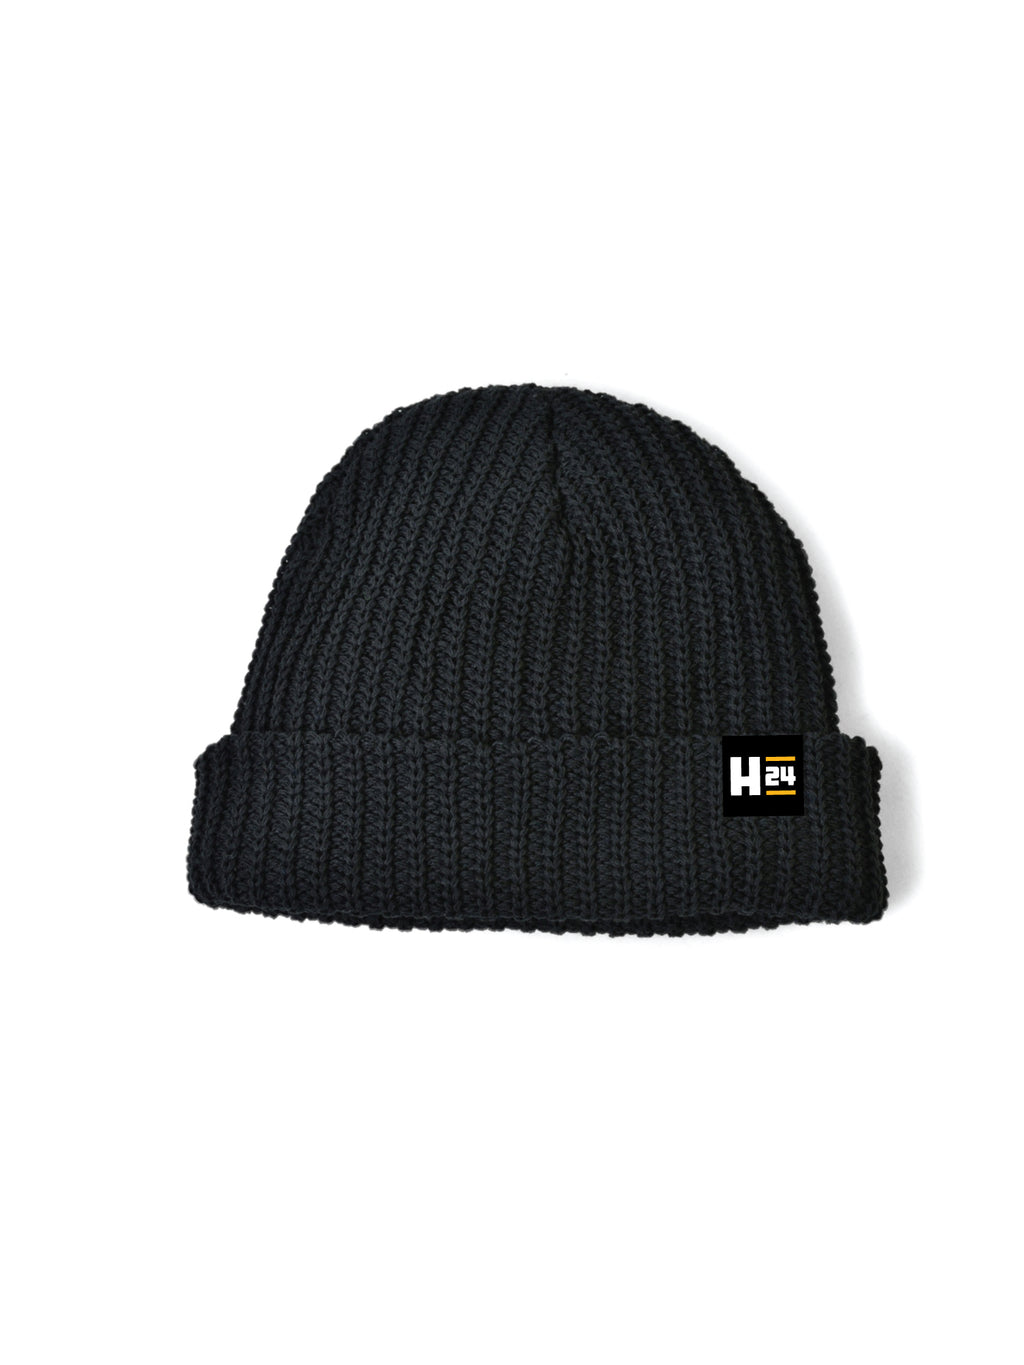 HANGAR 24 STANDARD BEANIE- BLACK - Anderson Bros Design and Supply